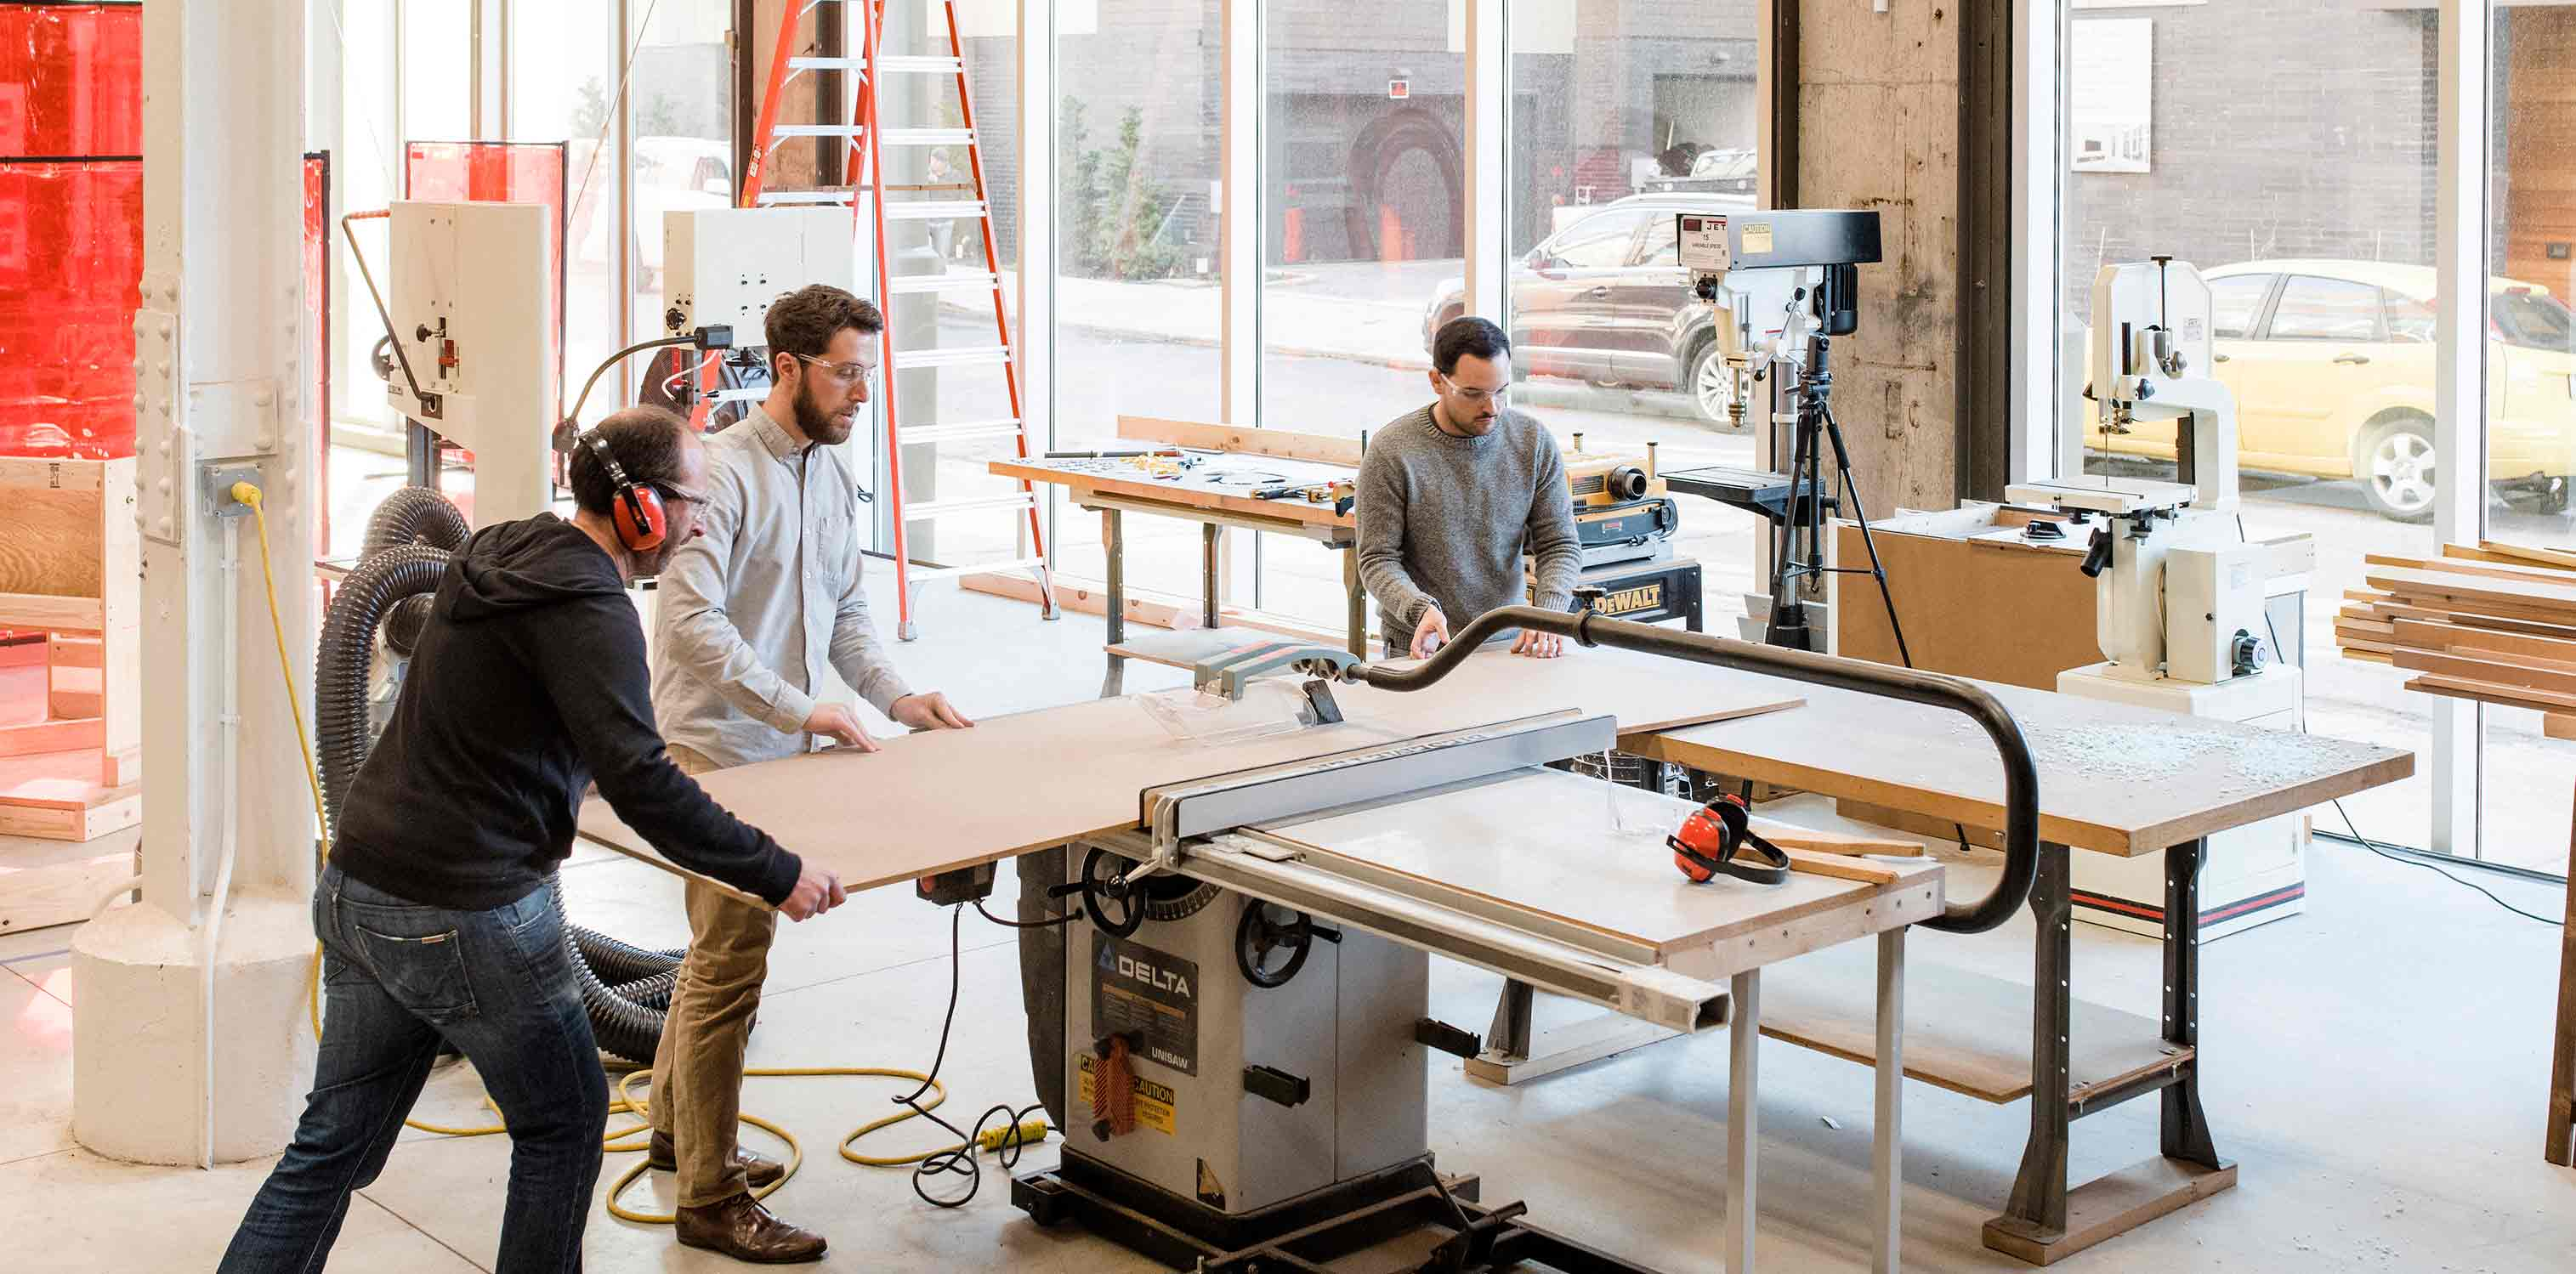 <p>Researchers and architects work side by side, often in the studio's workshop as they create full-scale prototypes and simulations.<br> <br /><small>©Chris Leaman</small></p>